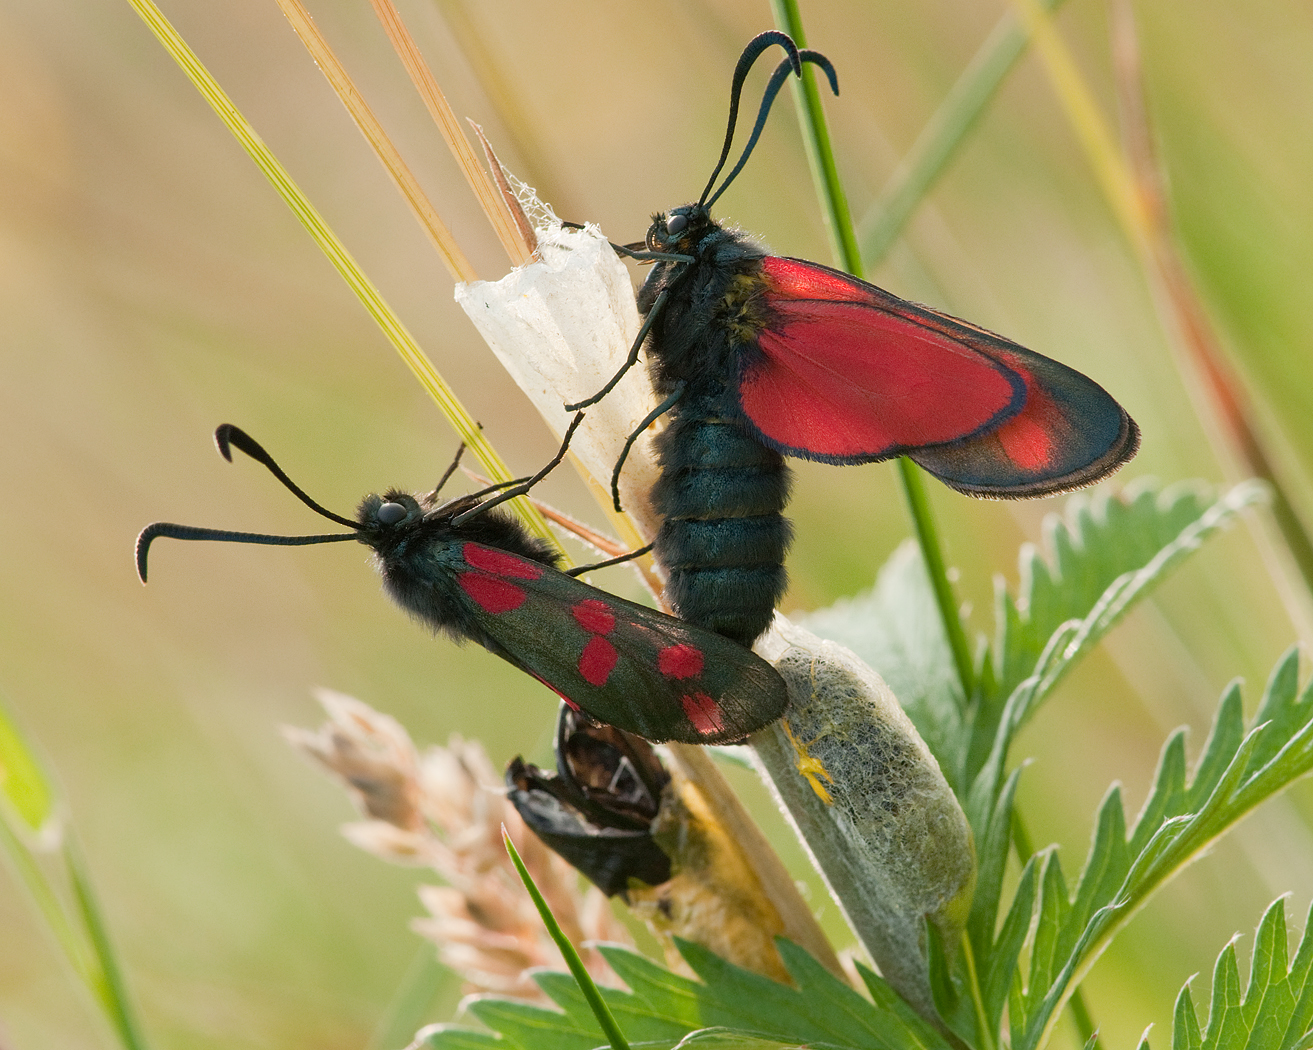 Life Cycle of the Burnet Moth